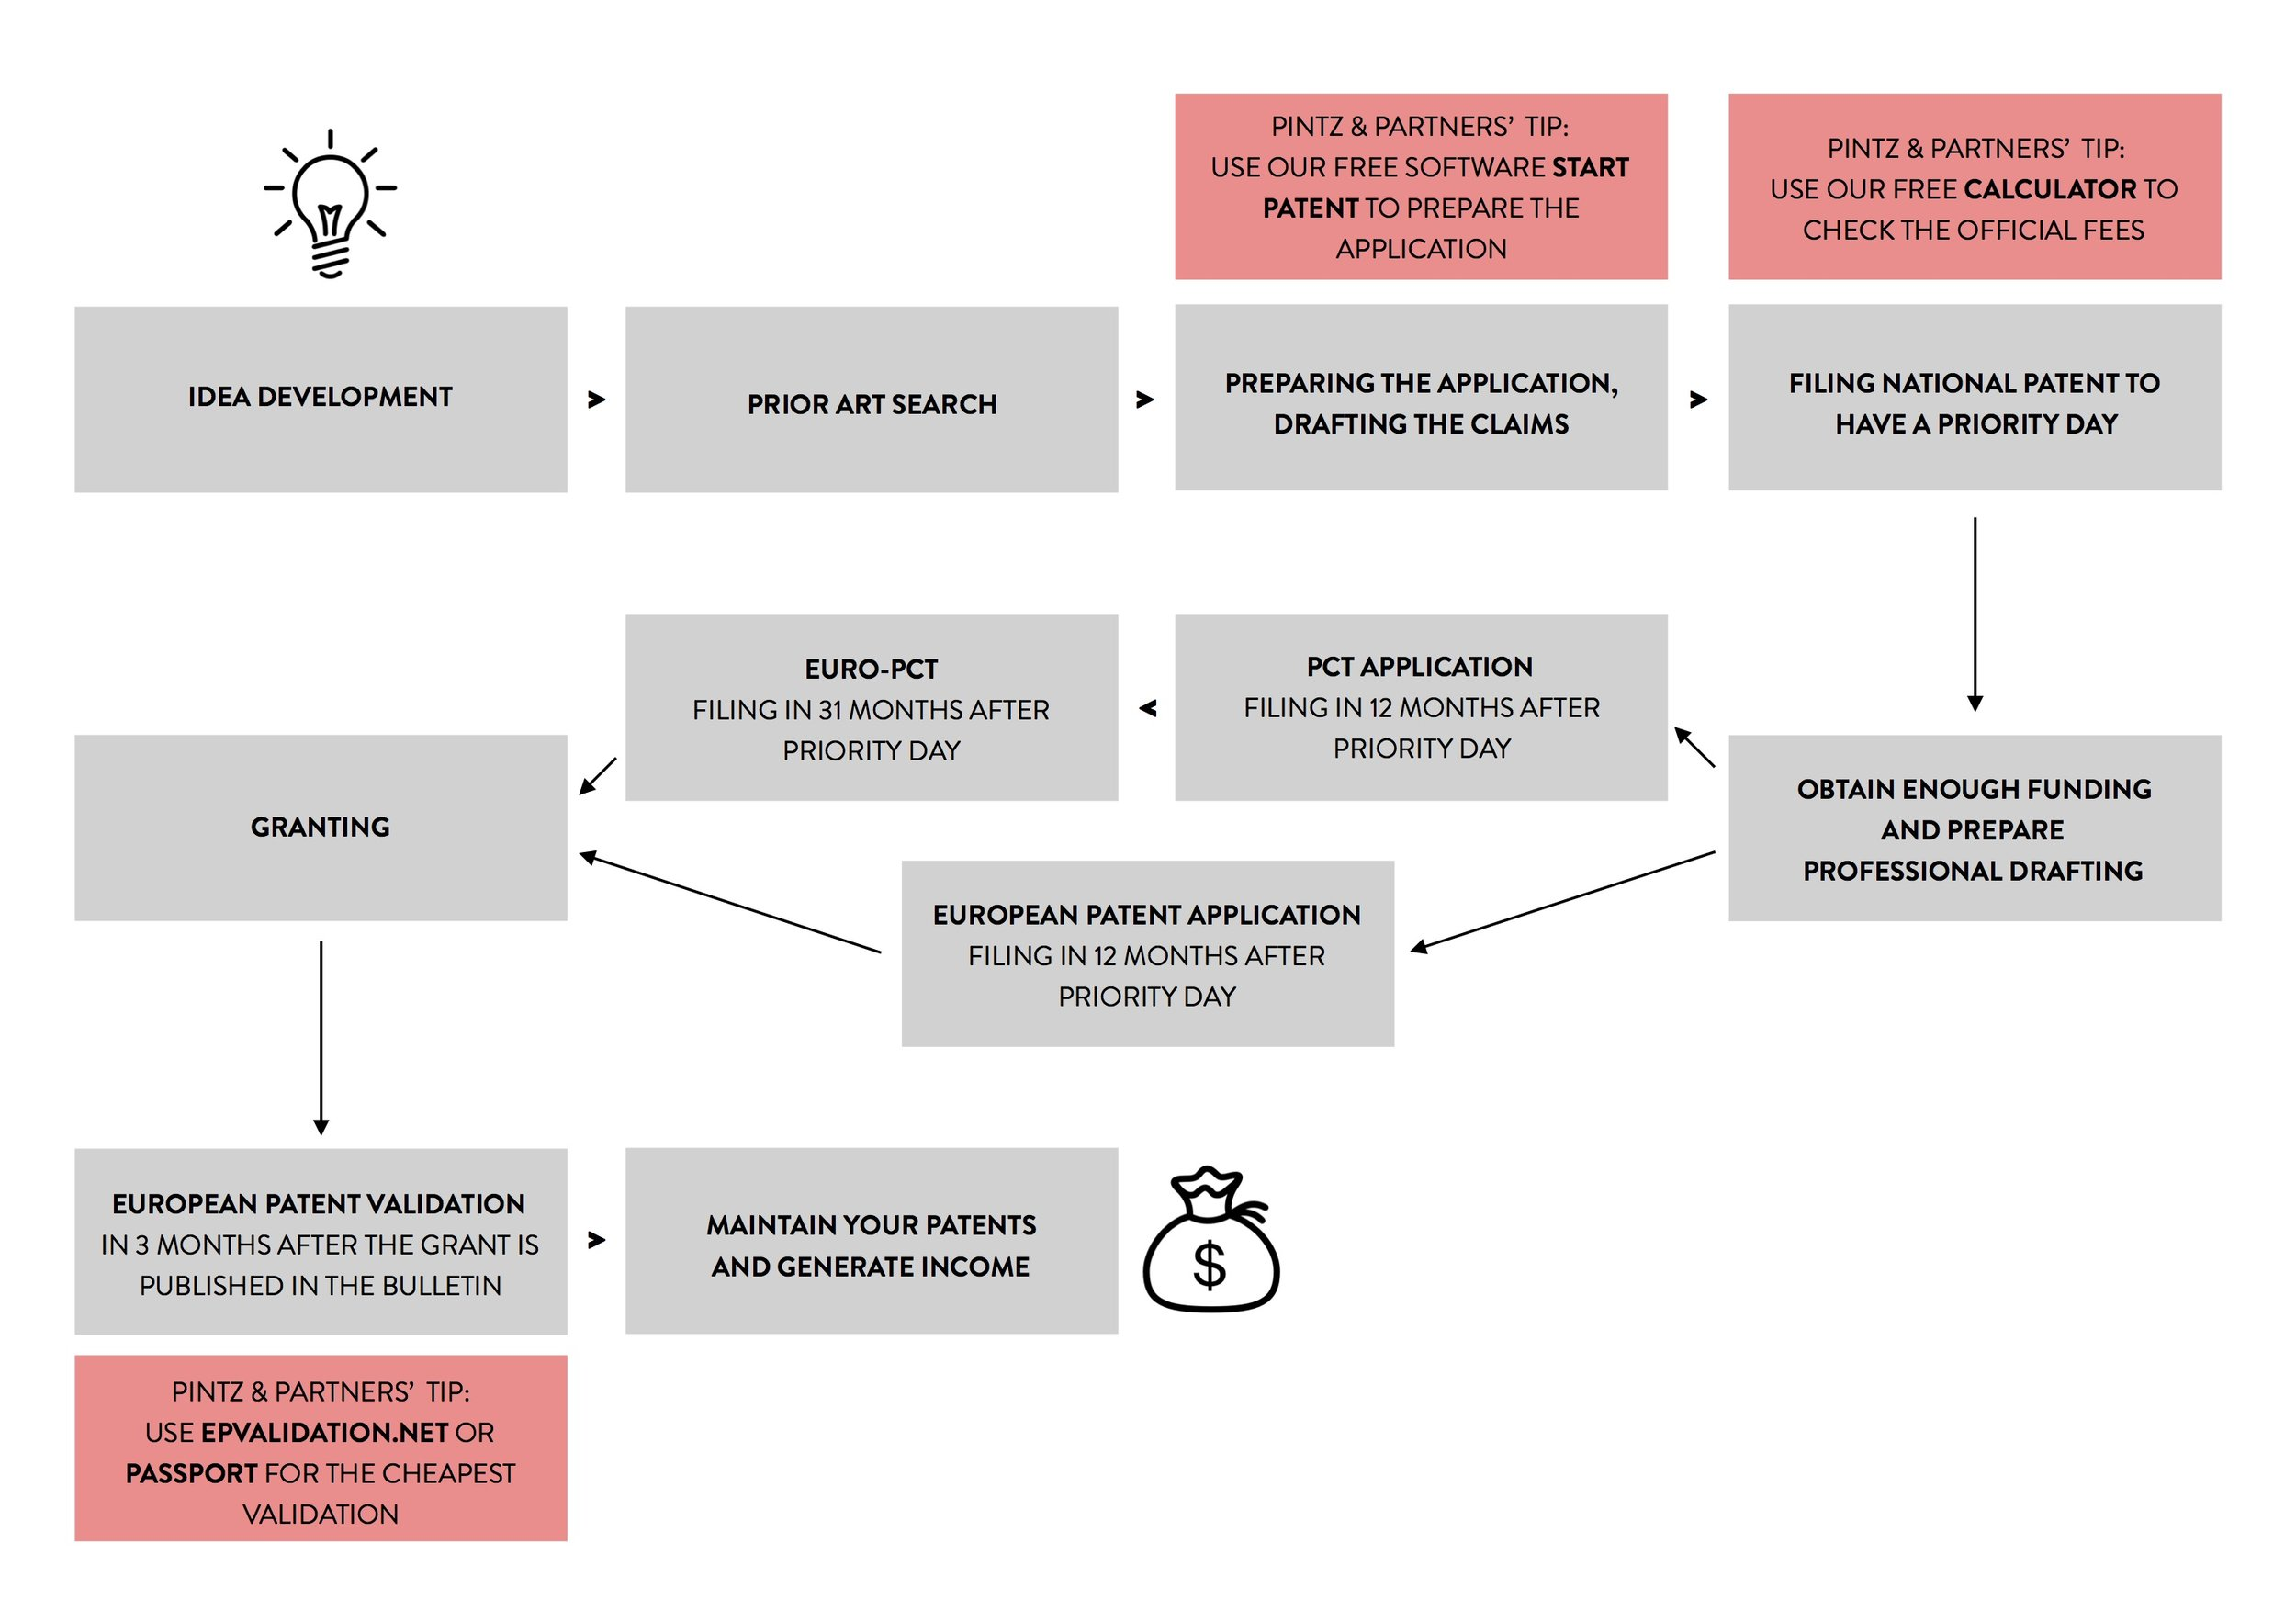 Click on the image to download the flowchart